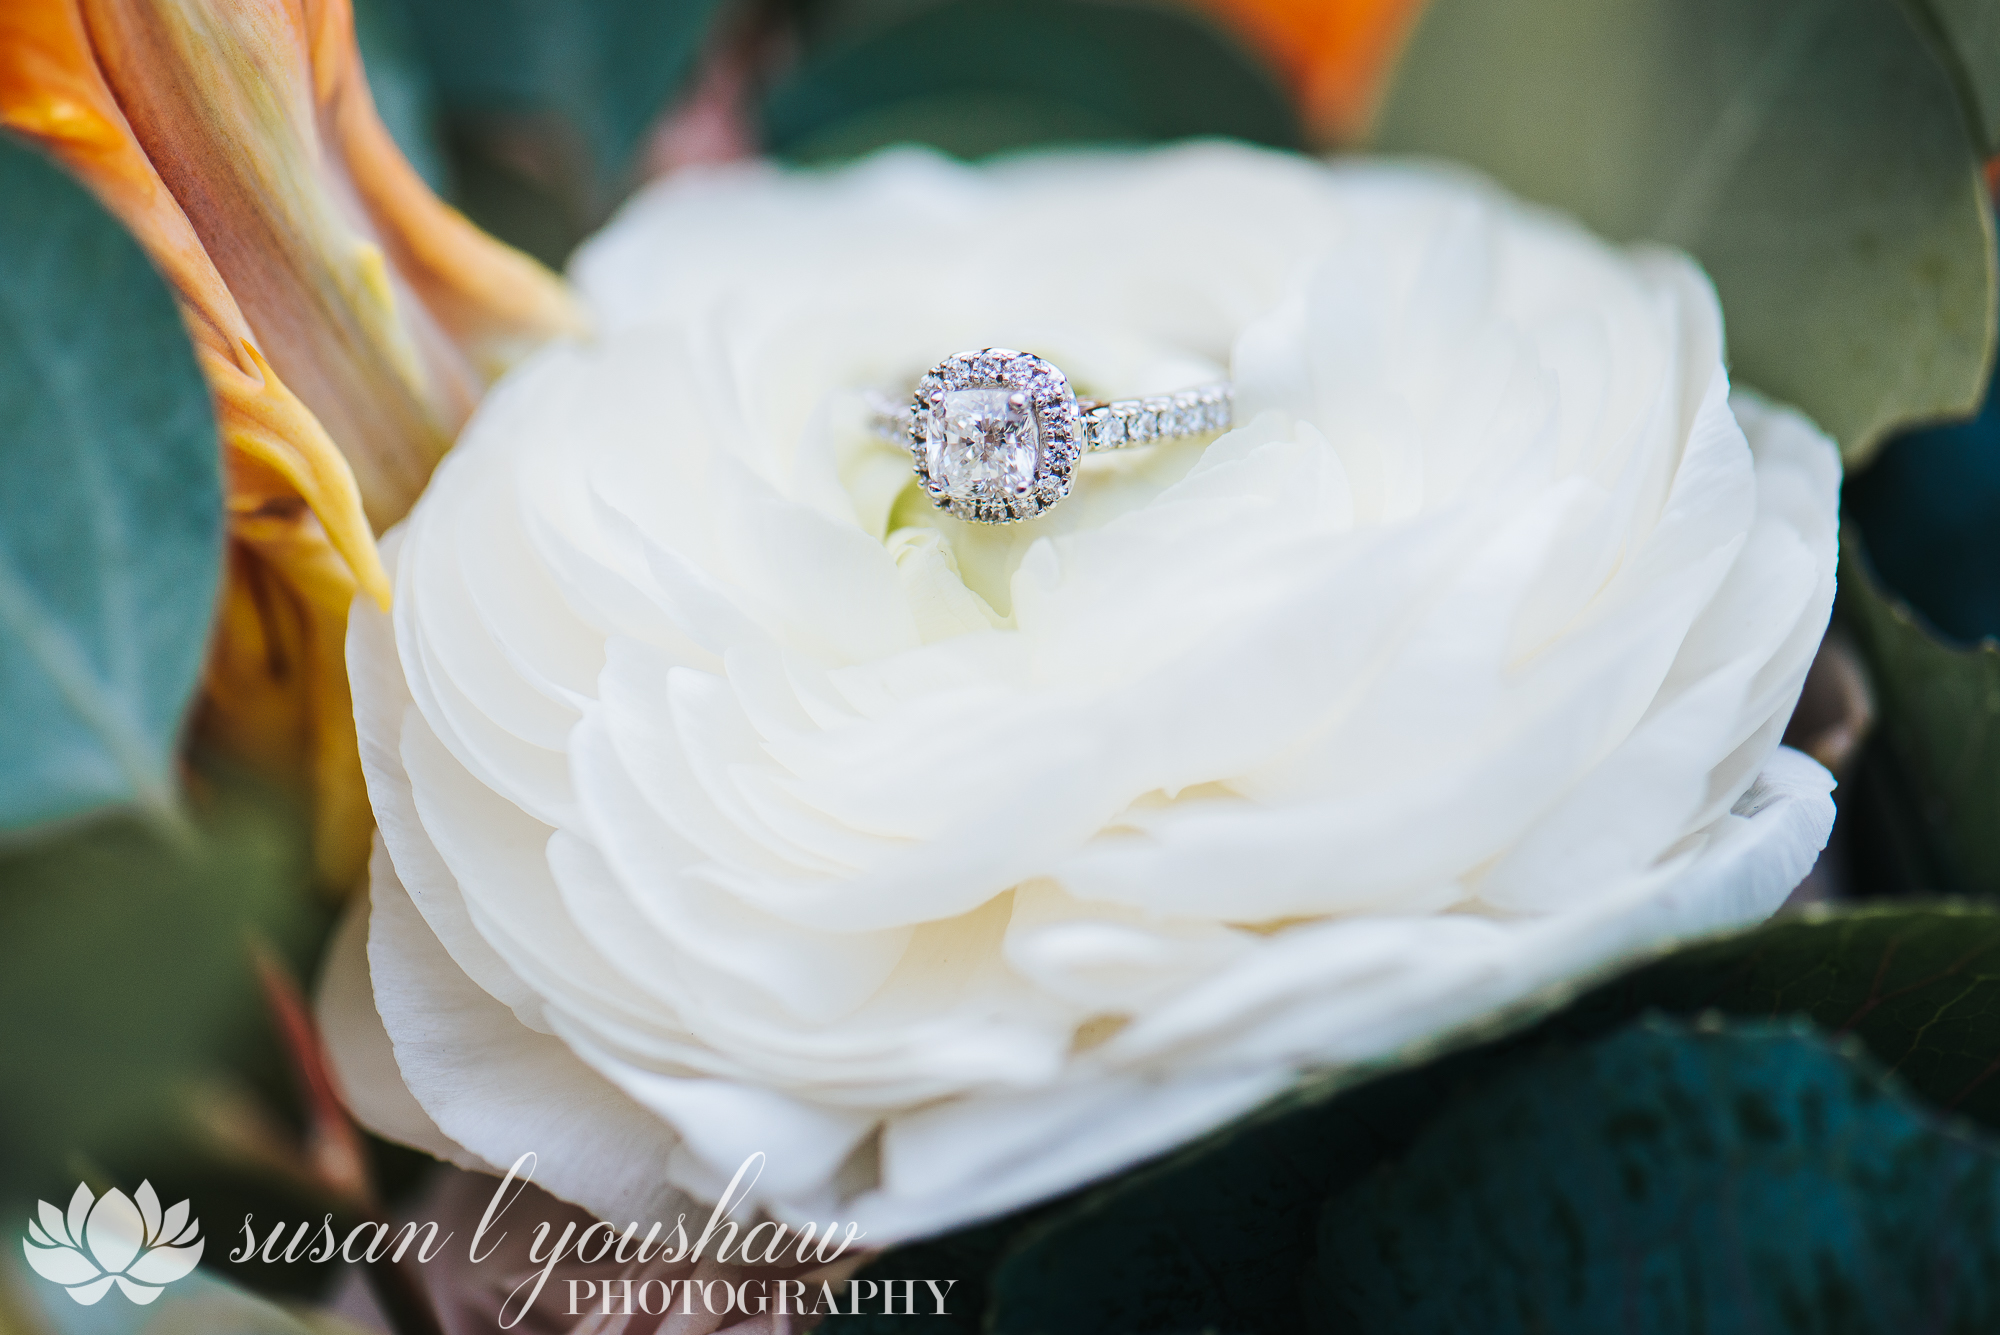 BLOG Love It LaVintage 10-21-2018 SLY Photography LLC-6.jpg